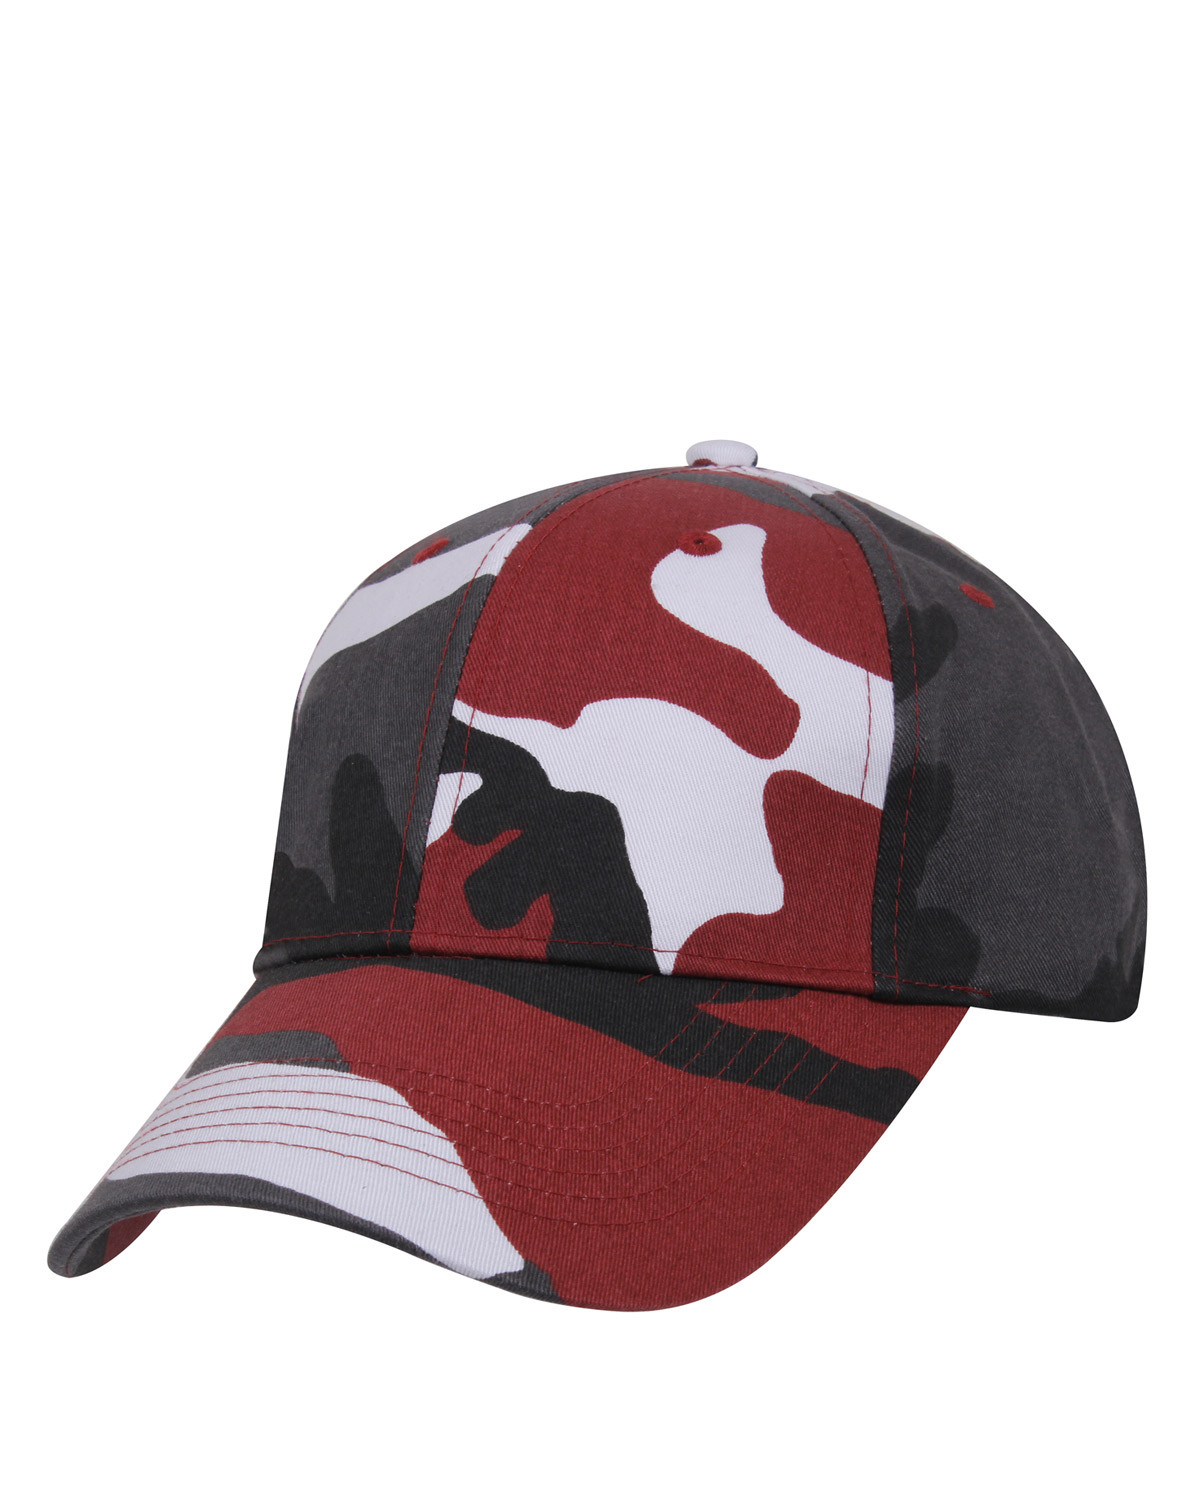 Rothco Cap (Red Camo, One Size)